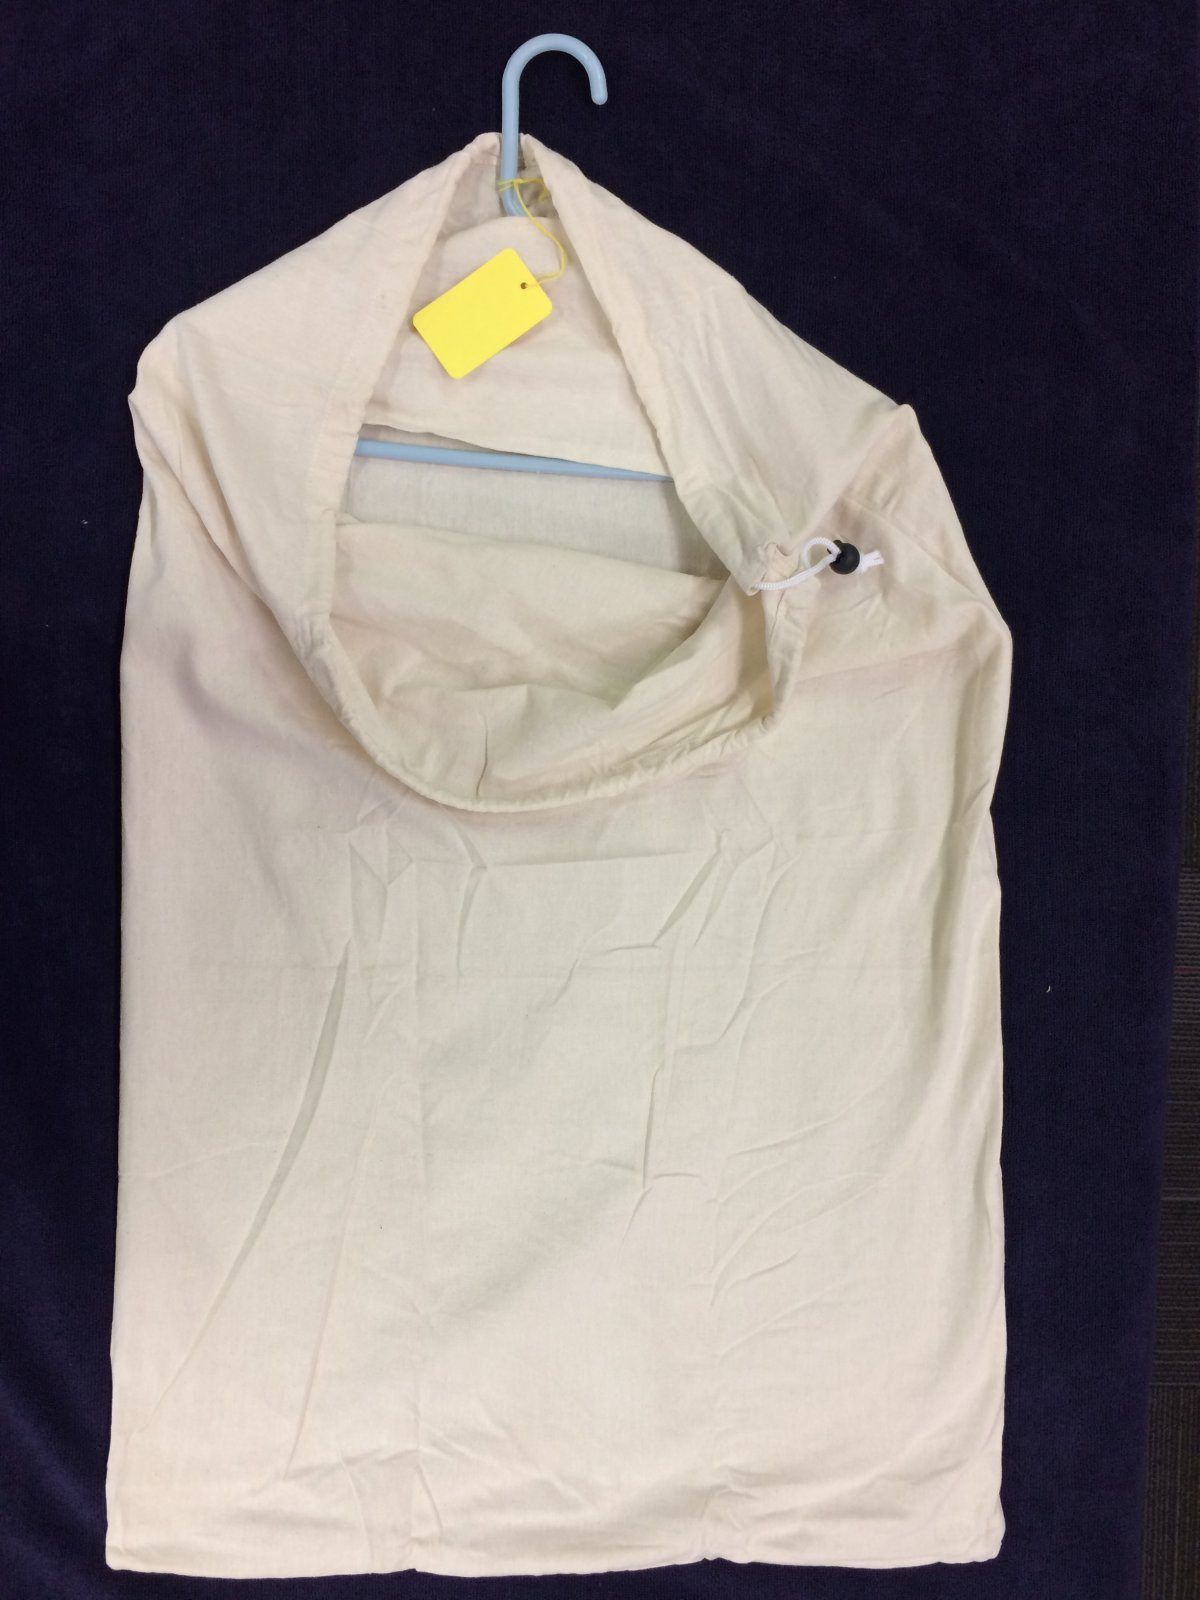 Extra Large Cotton Laundry bag with Hanger insert LB40WH